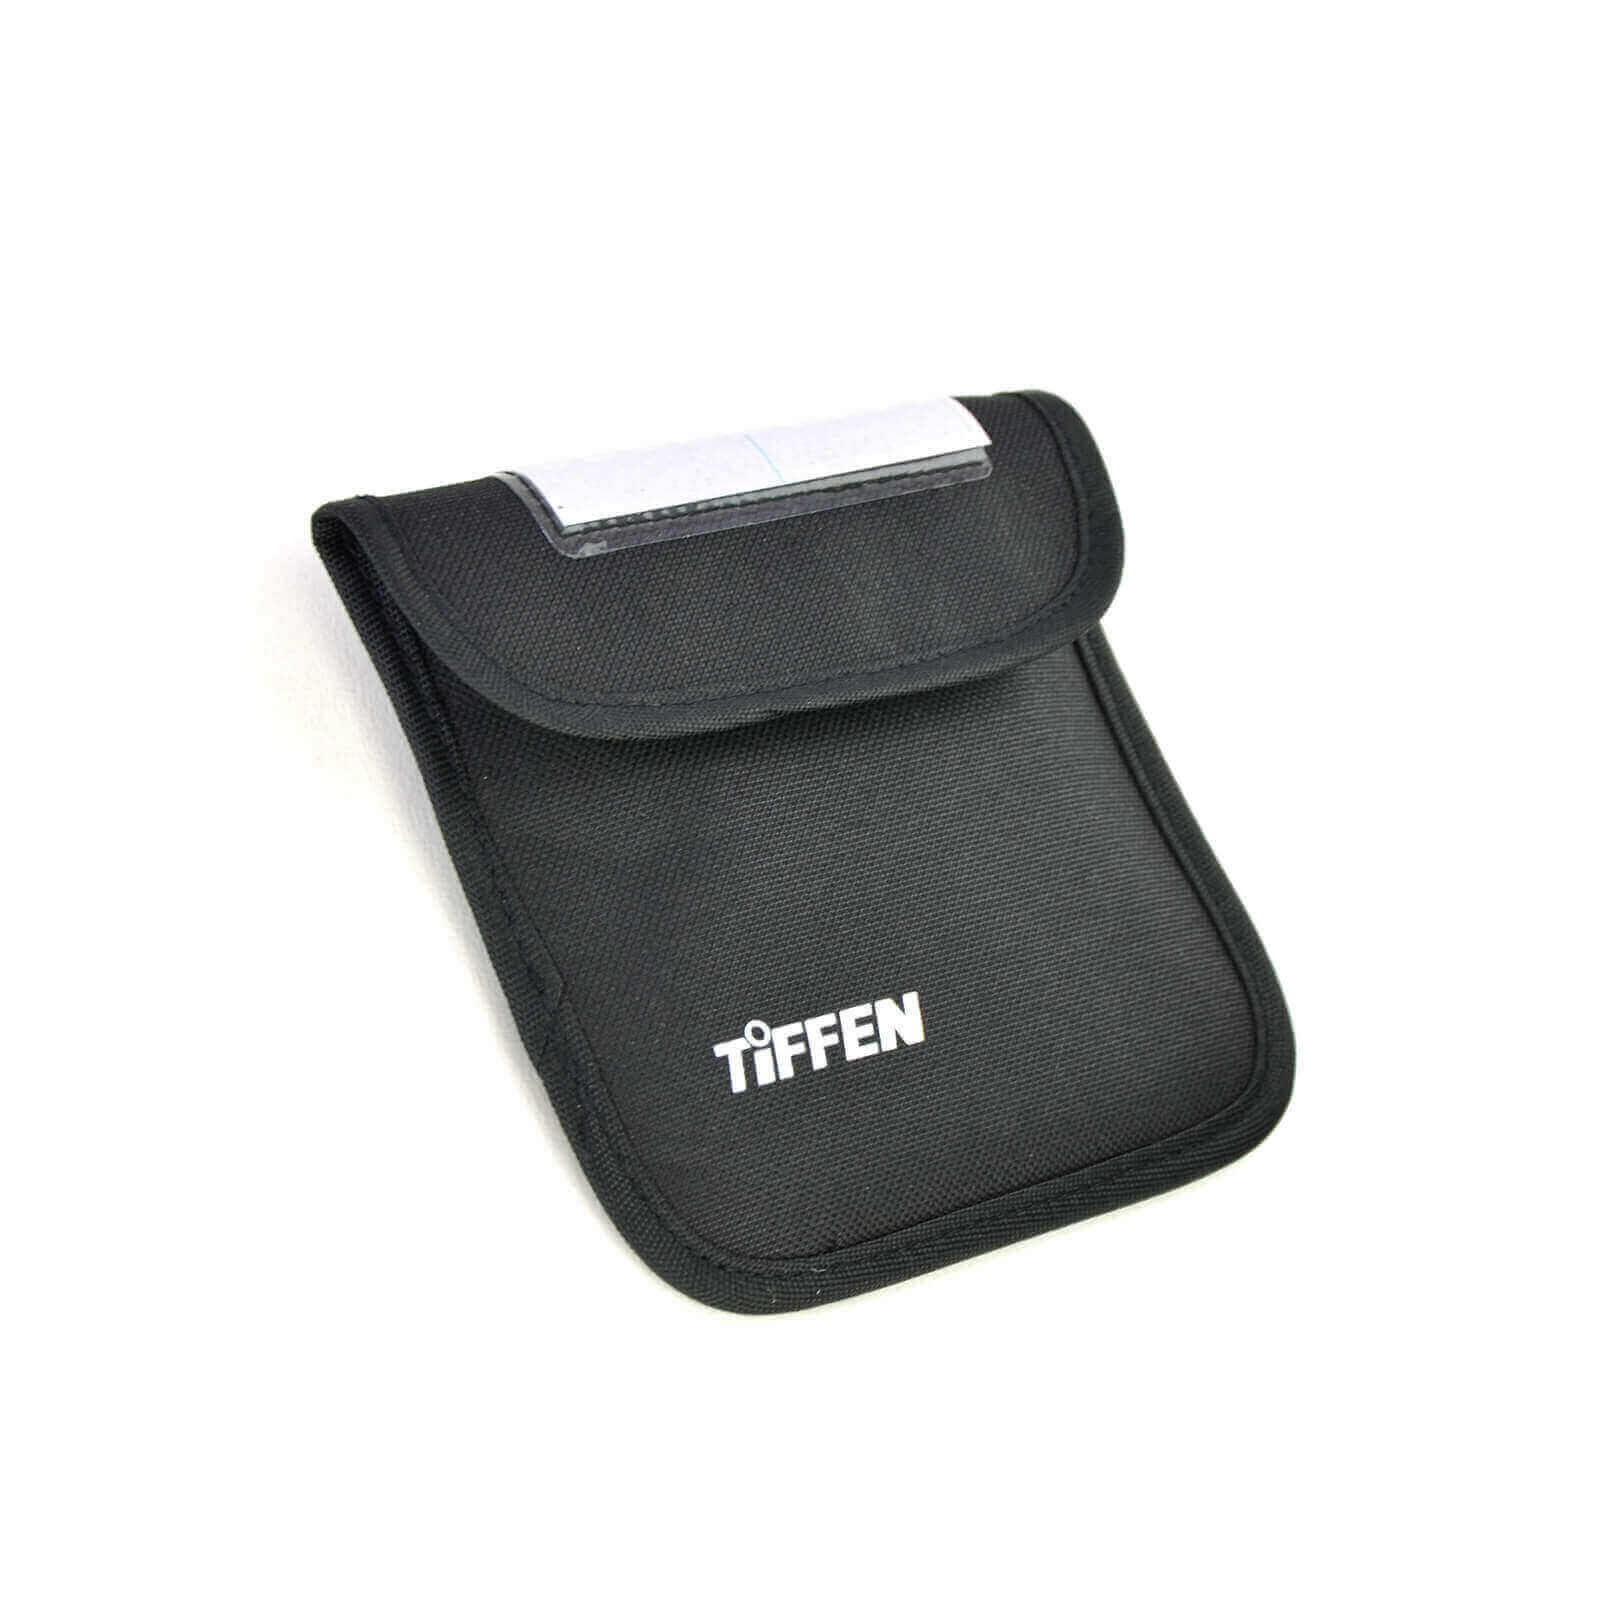 Стеклофильтр TIFFEN 44ND3 4 x 4 Neutral Density 0.3